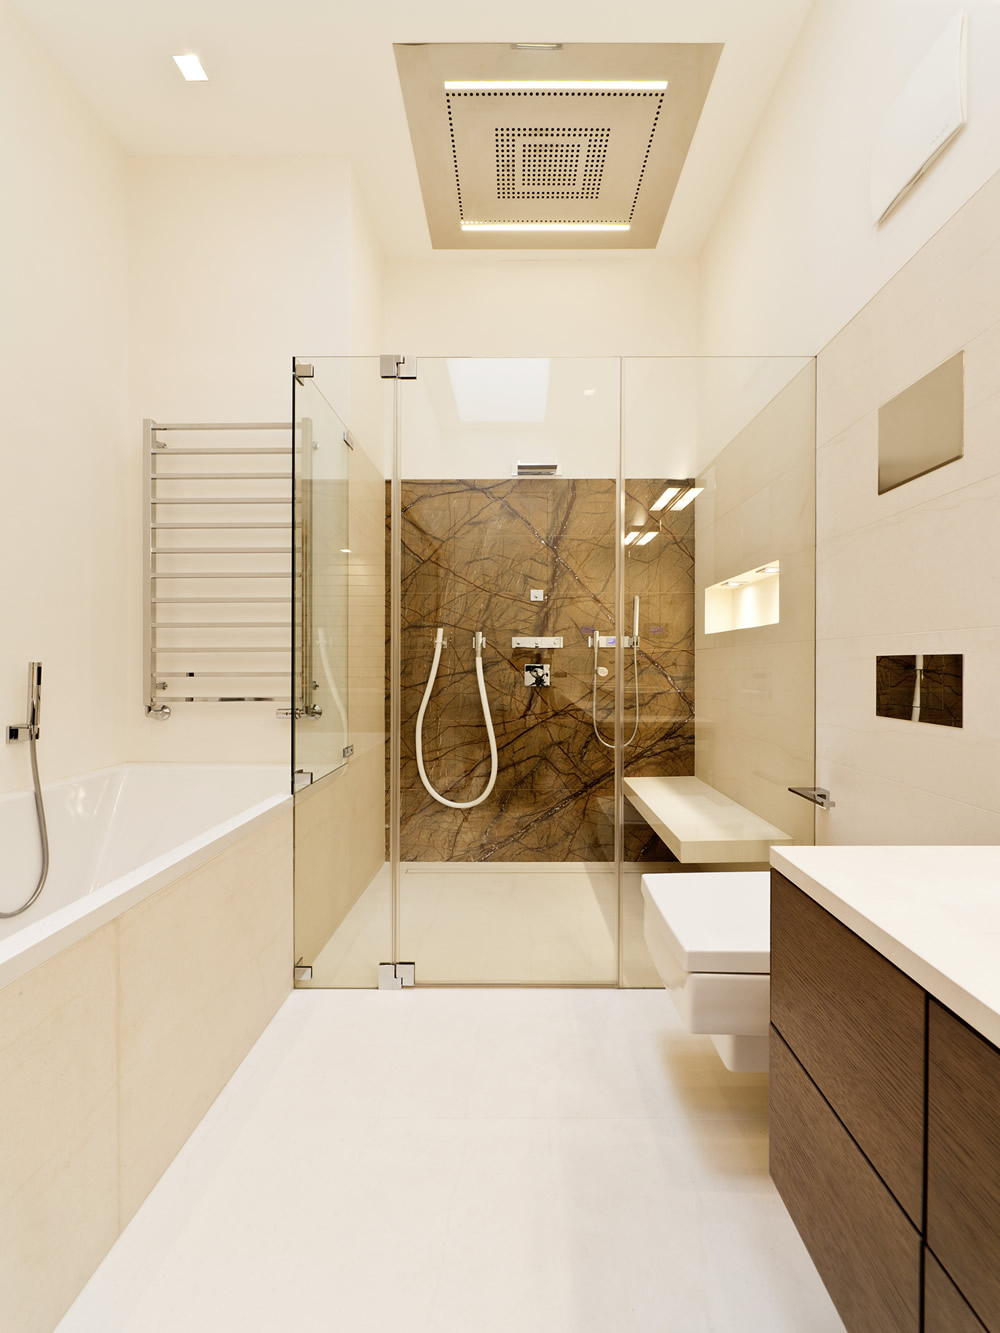 Room Design: Wet Room Design Gallery